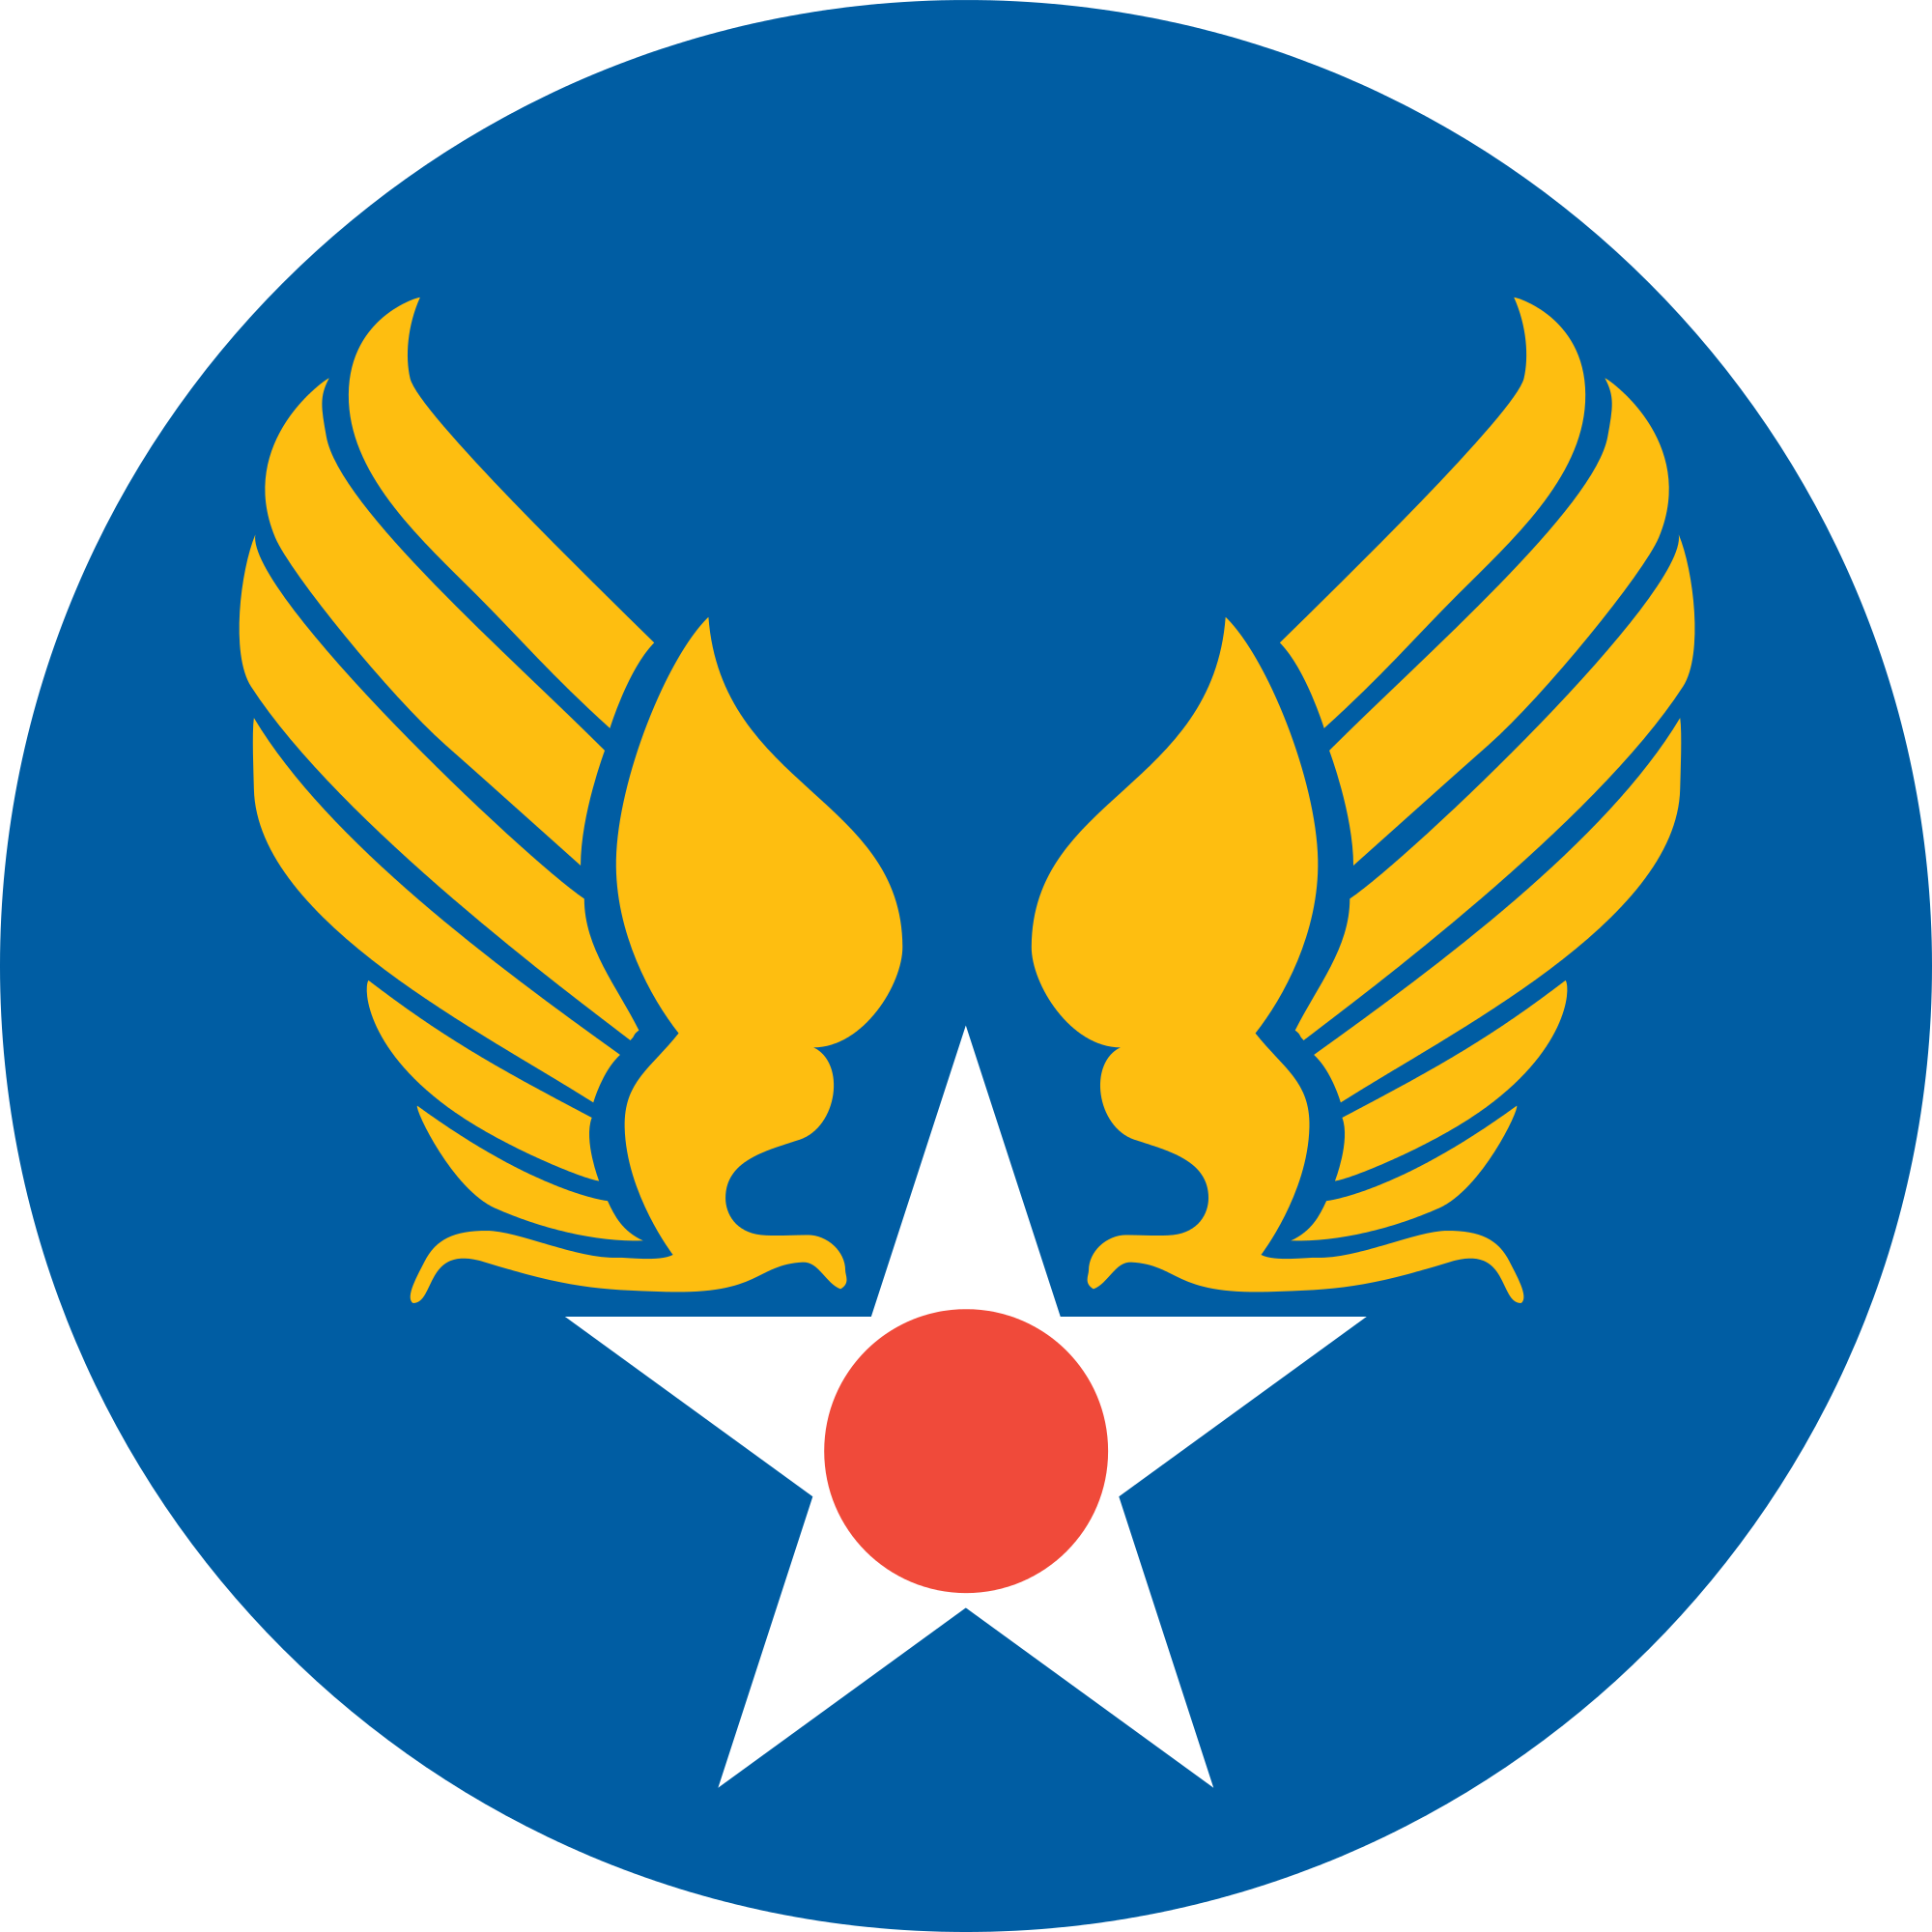 United States Army Air Forces Wikipedia The Free Encyclopedia Air Force Tattoo Army Symbol Air Force Symbol